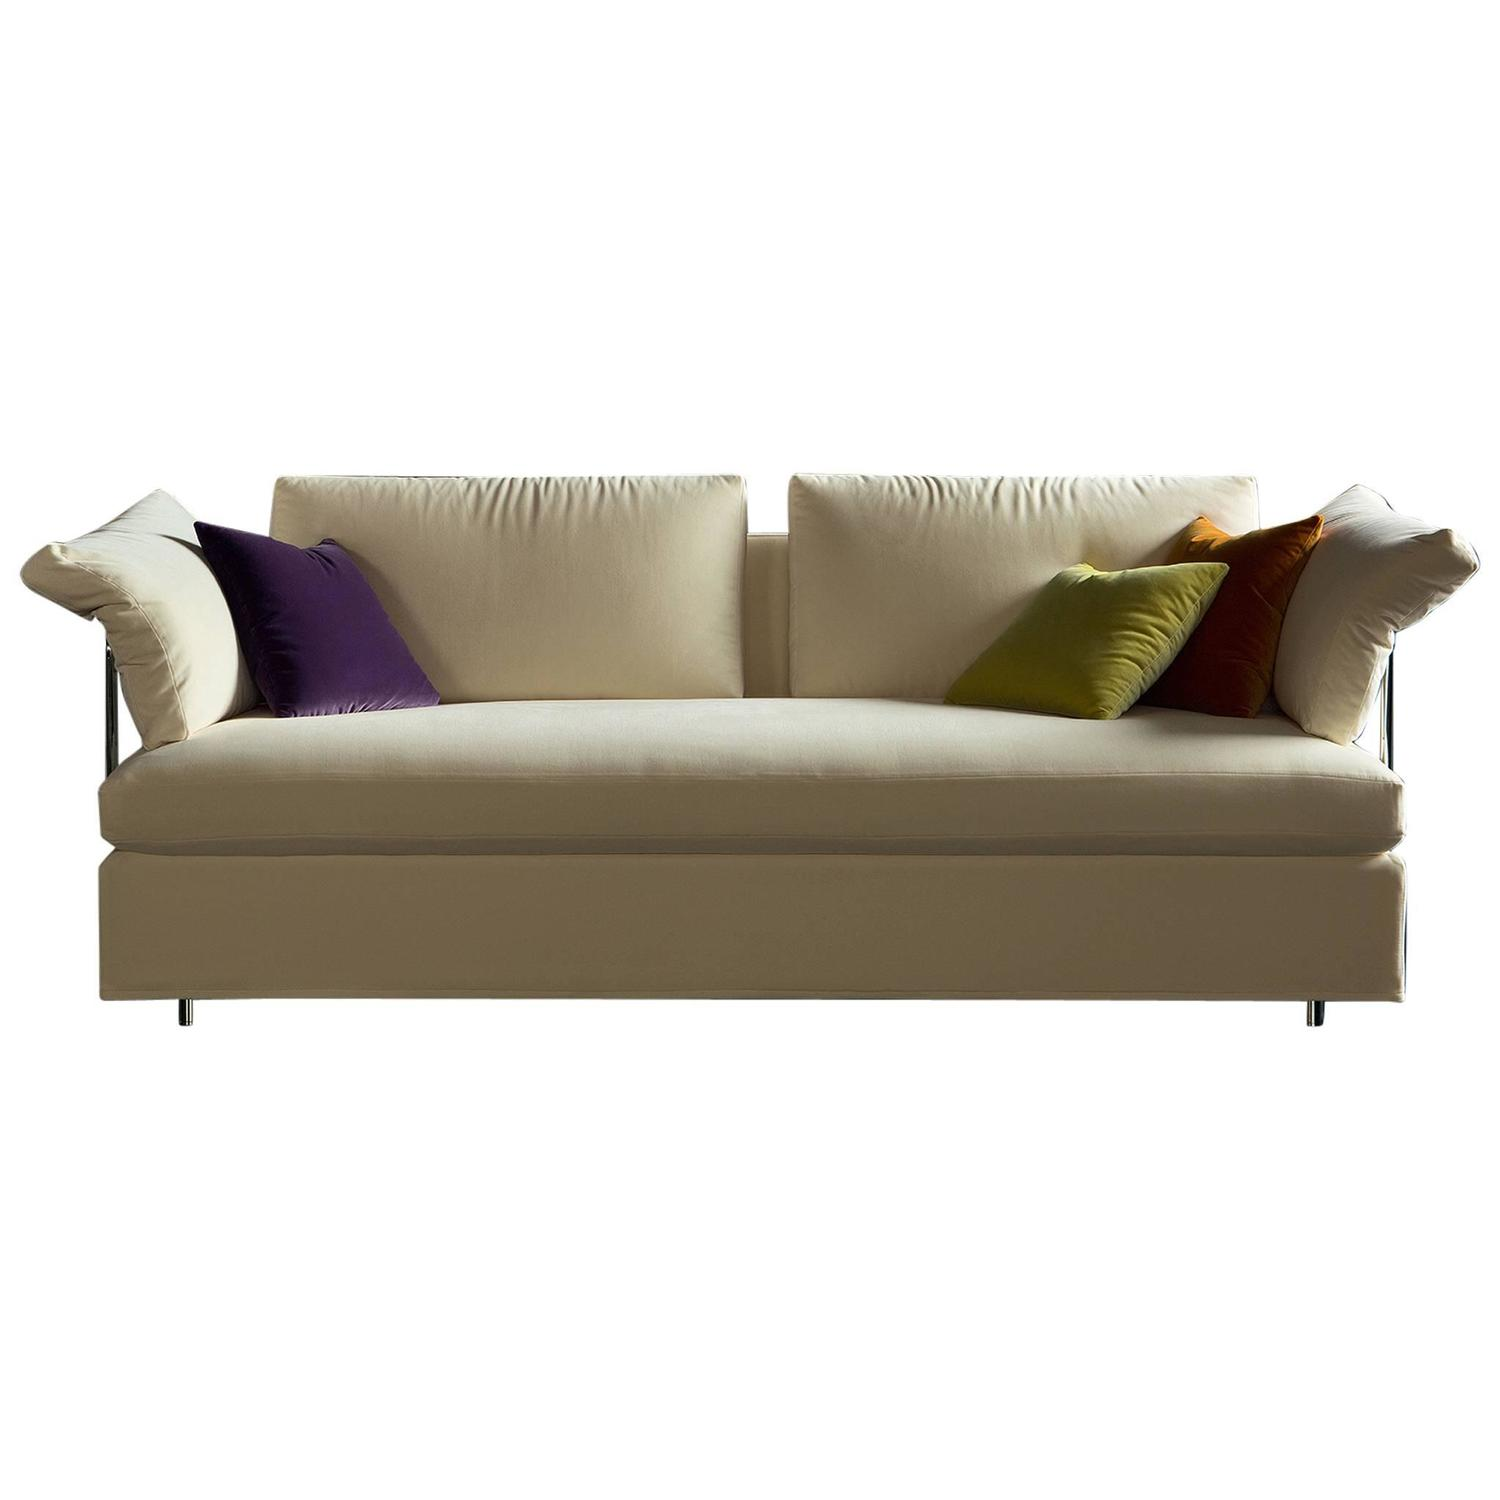 Sofa beds on sale good the brick sectional sofa bed 19 in for Most comfortable couches for sale